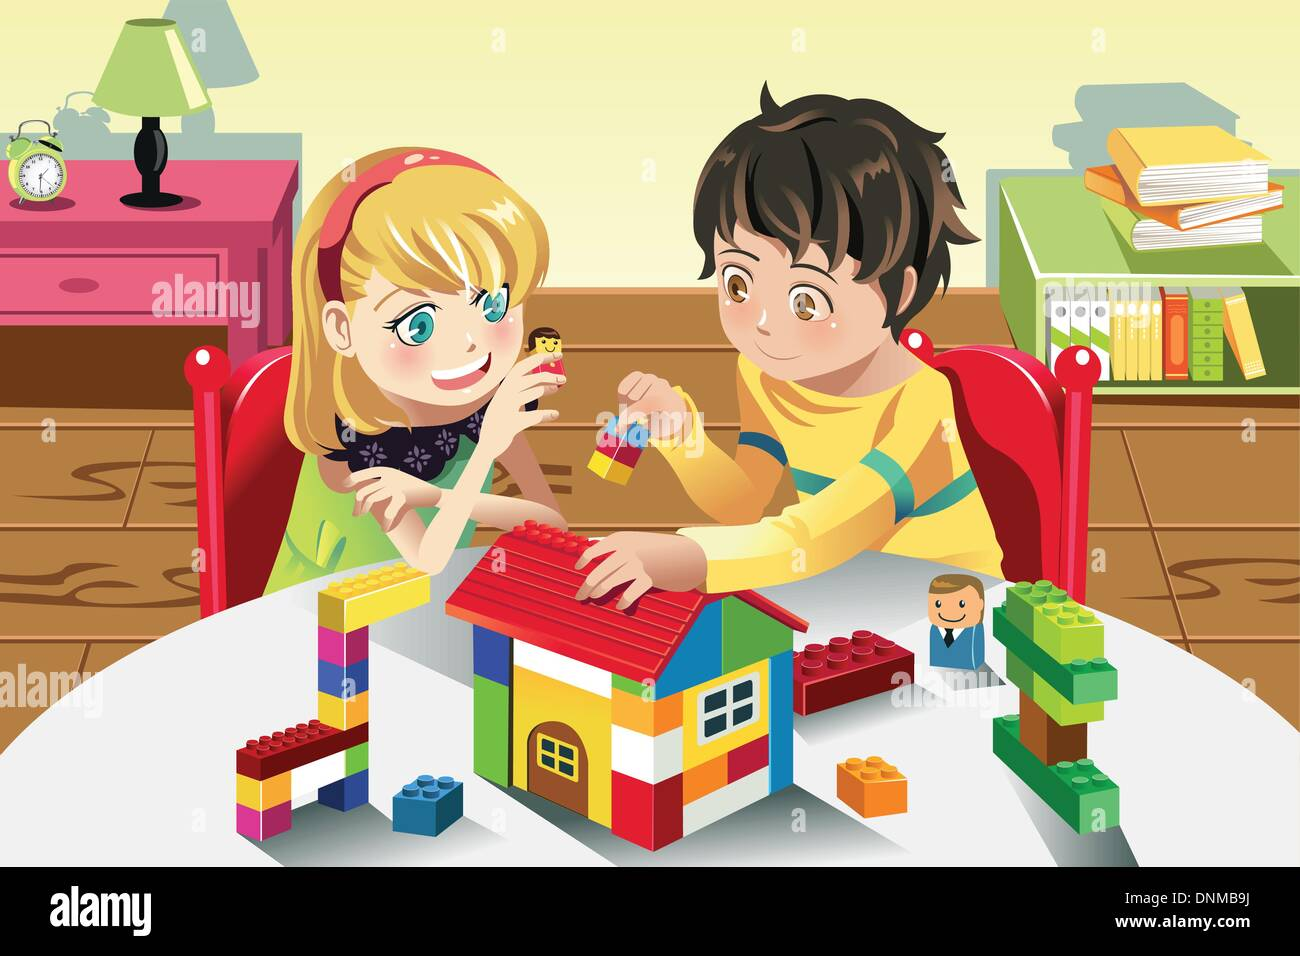 A Vector Illustration Of Kids Playing With Their Toys Stock Vector